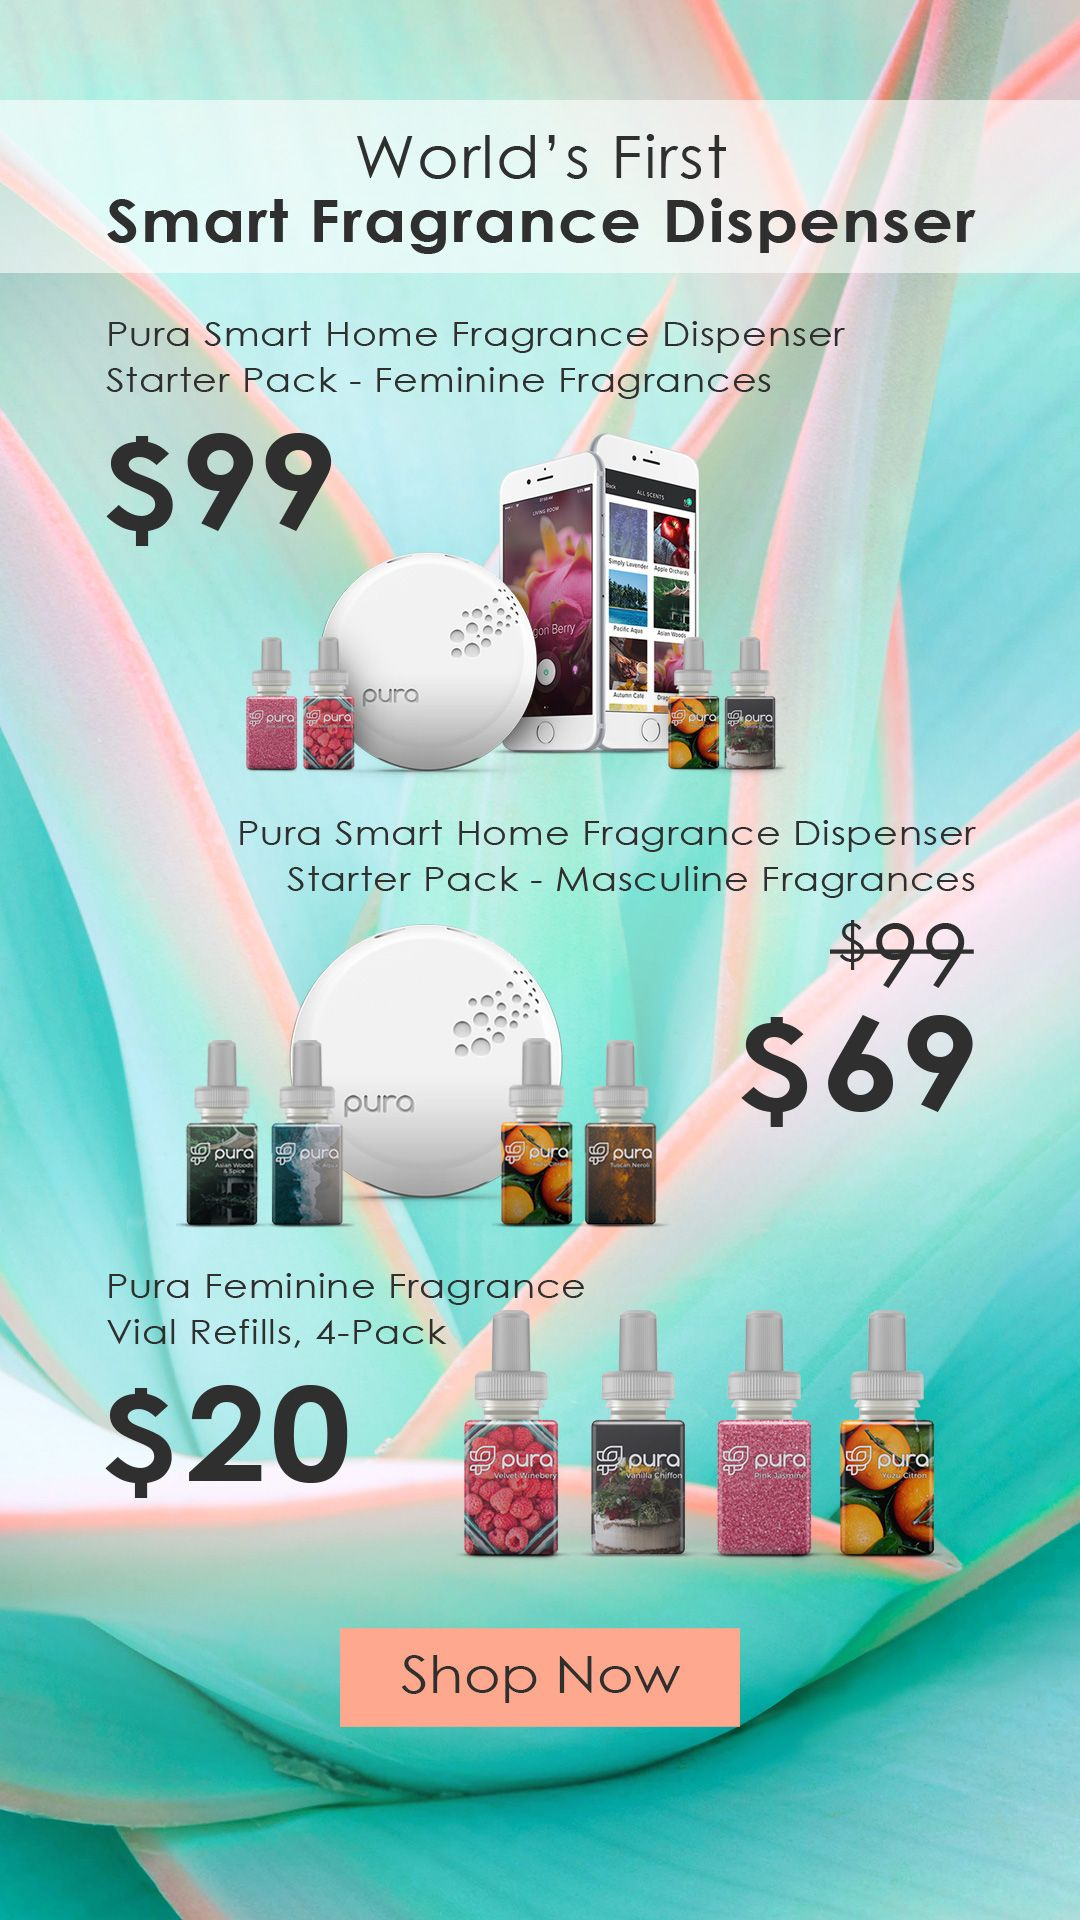 Customize Your Home Fragrances Right From Your Phone